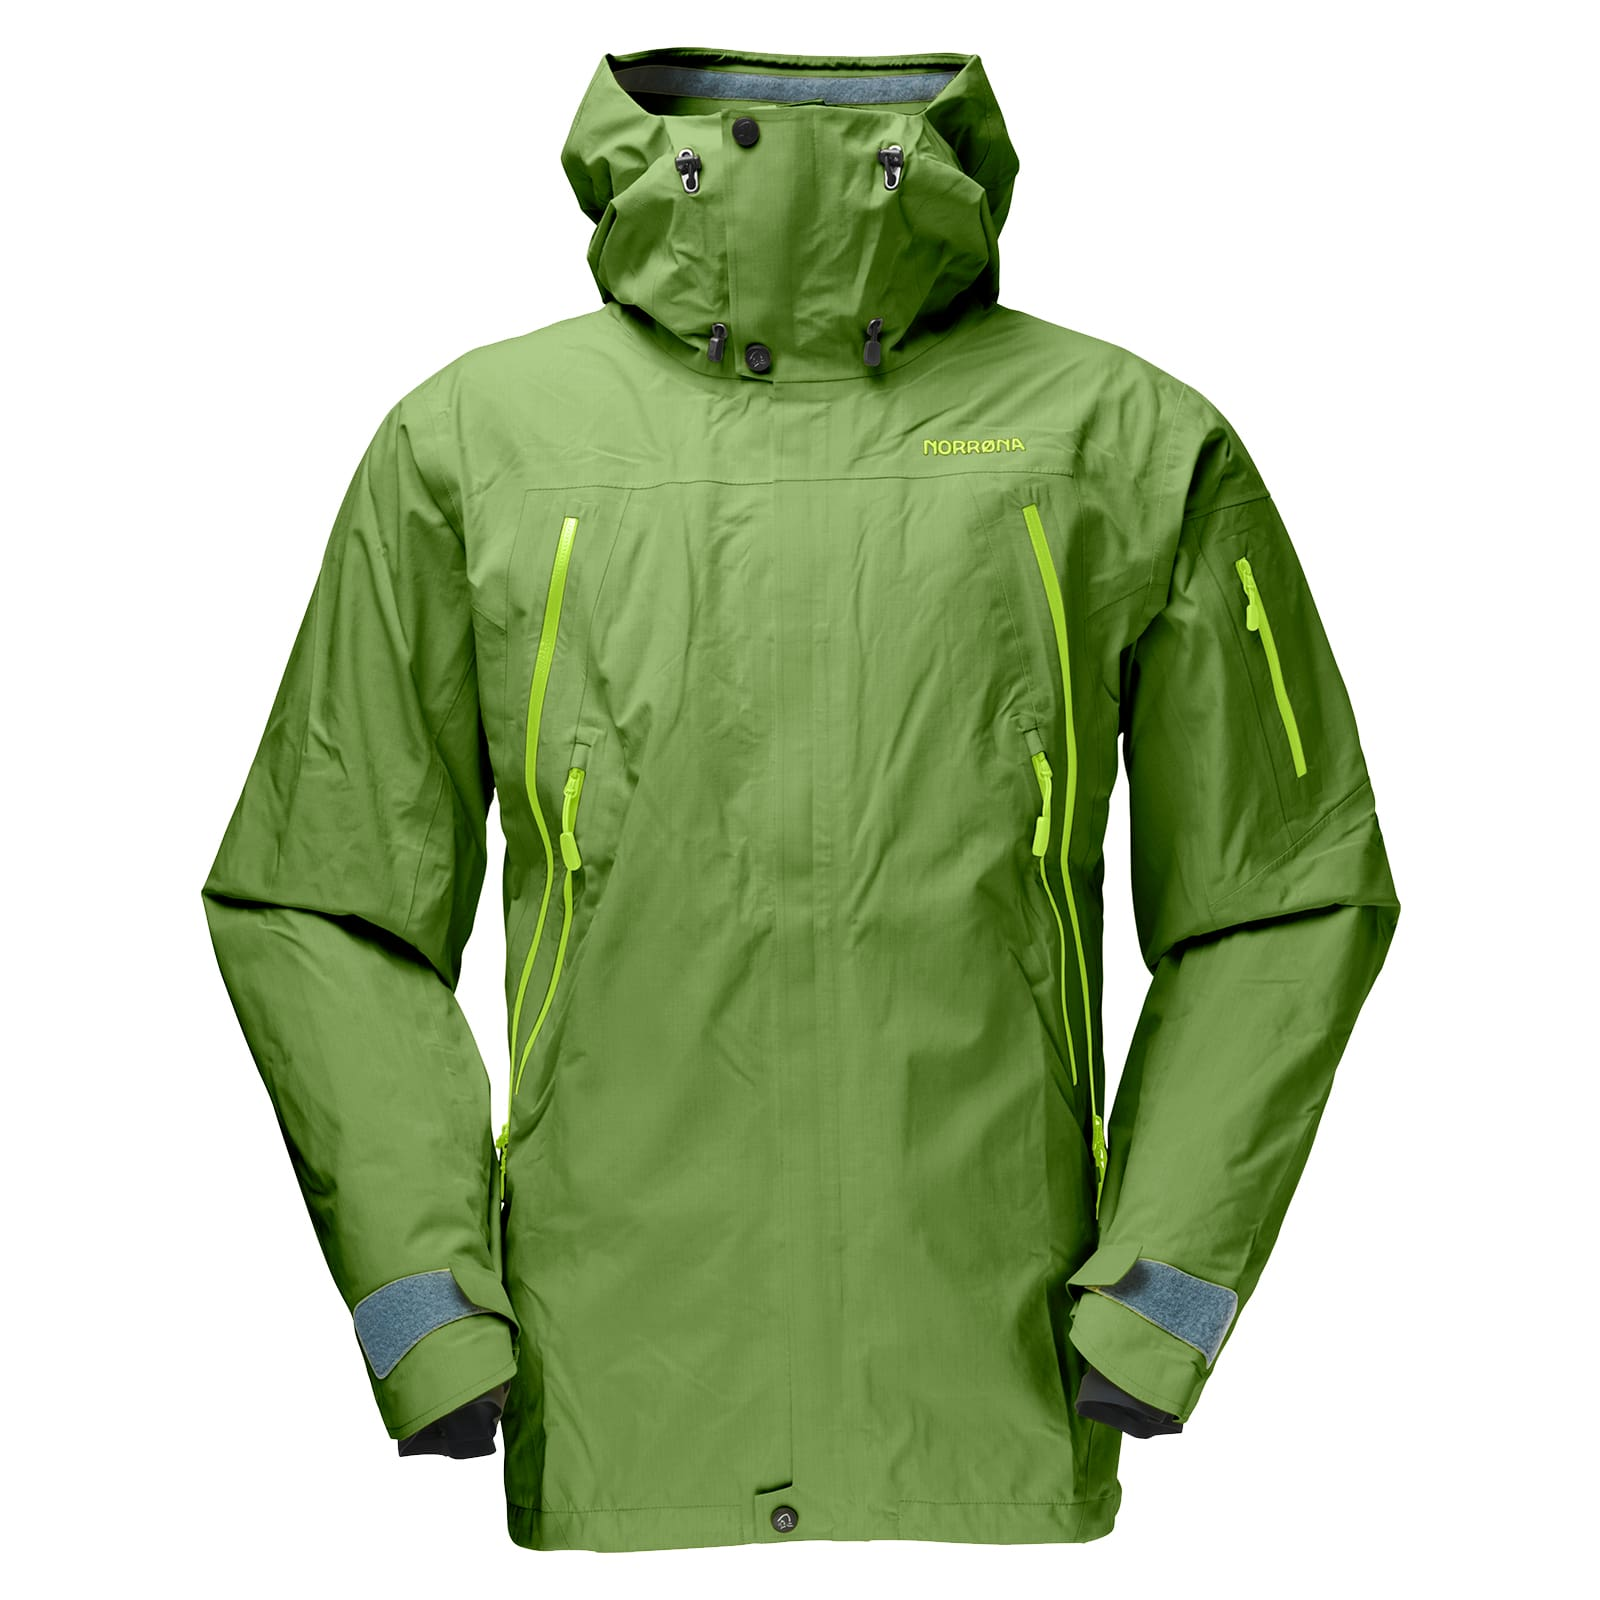 Narvik Gore Tex Performance Shell 2L Jacket Men's